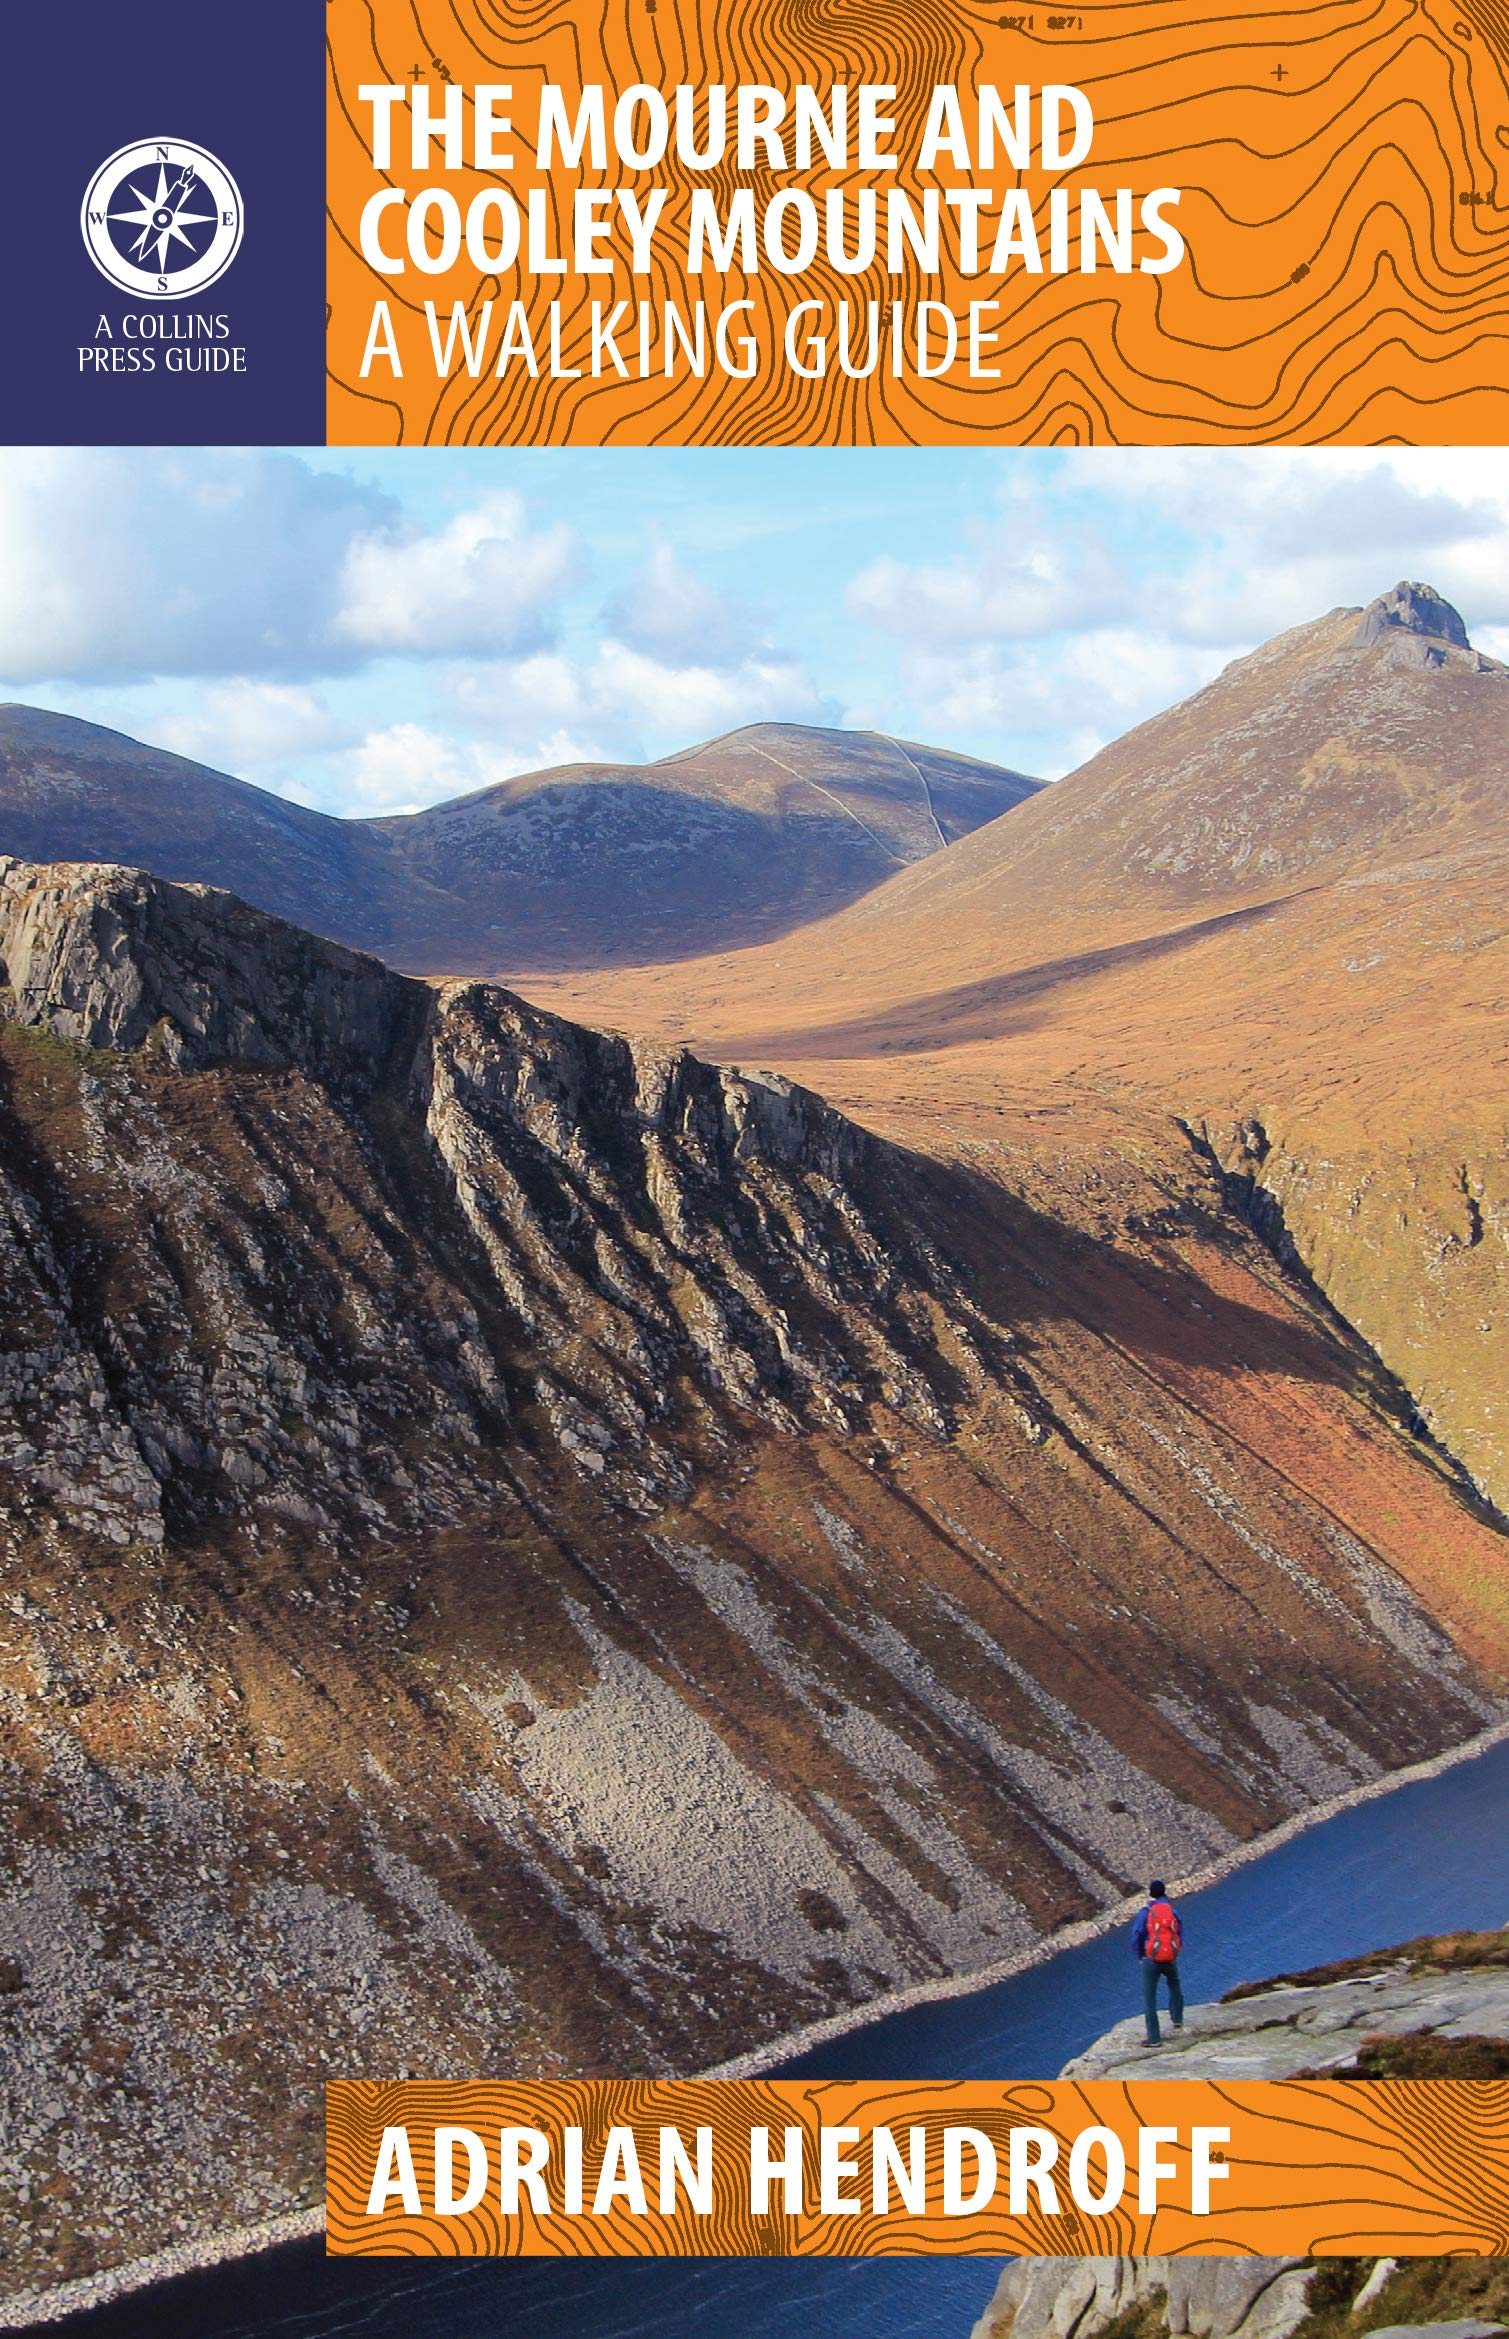 The Mourne and Cooley Mountains 9781848893467 Adrian Hendroff The Collins Press   Wandelgidsen Belfast, Ulster